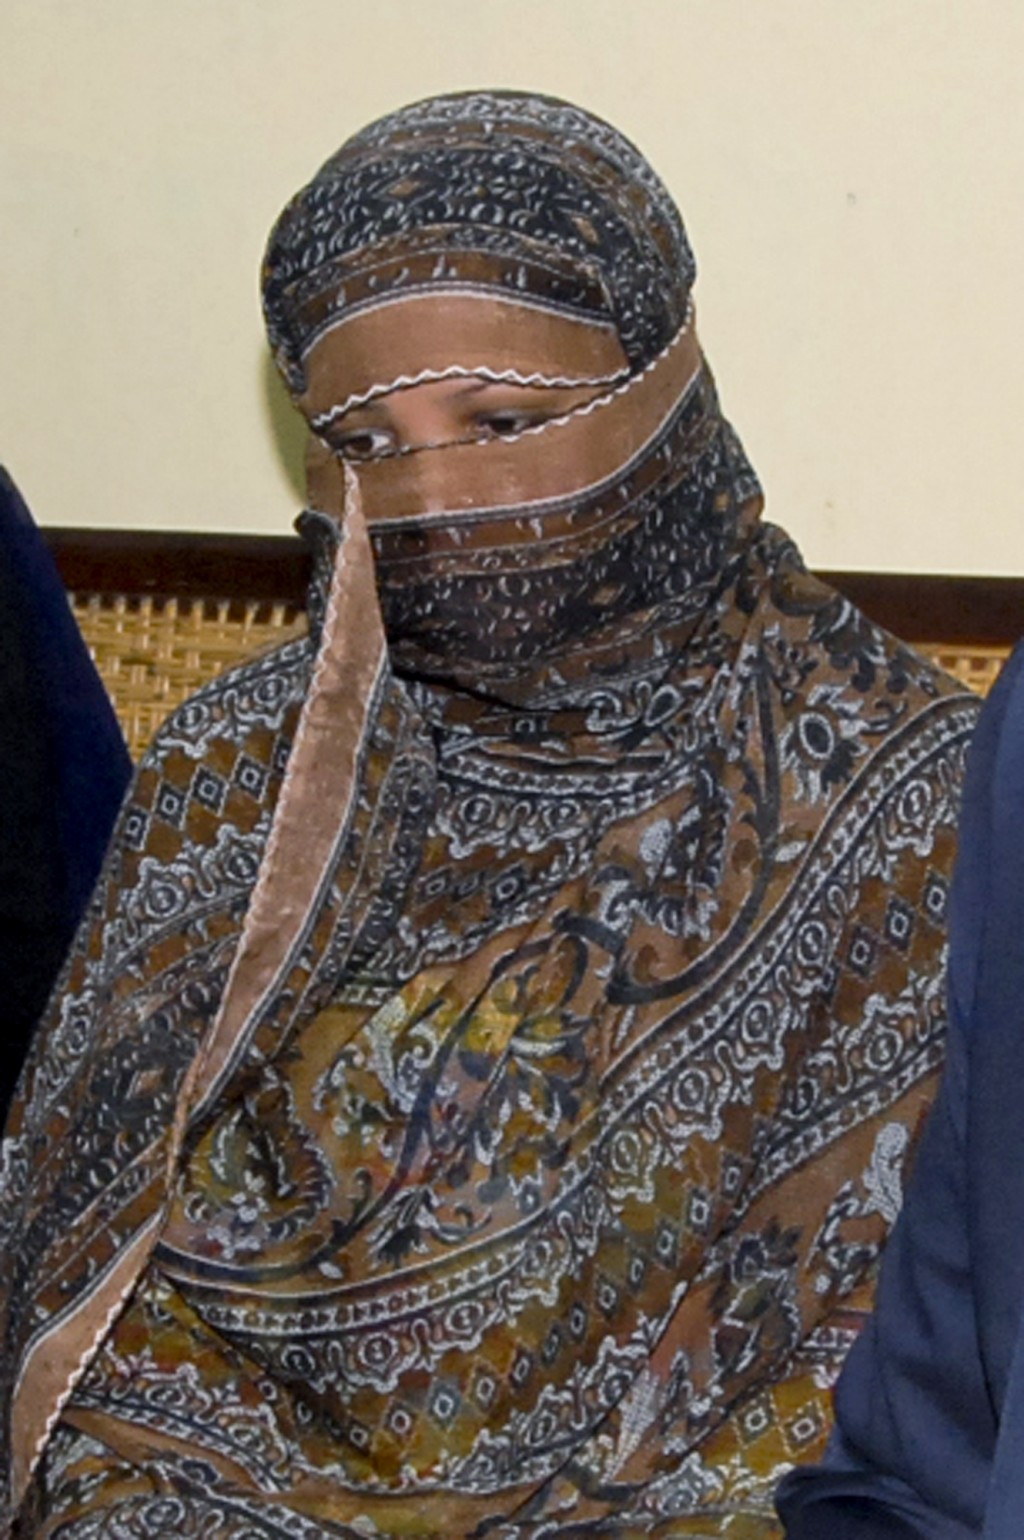 FILE - In this Nov. 20, 2010, file photo, Asia Bibi, a Pakistani Christian woman, listens to officials at a prison in Sheikhupura near Lahore, Pakista